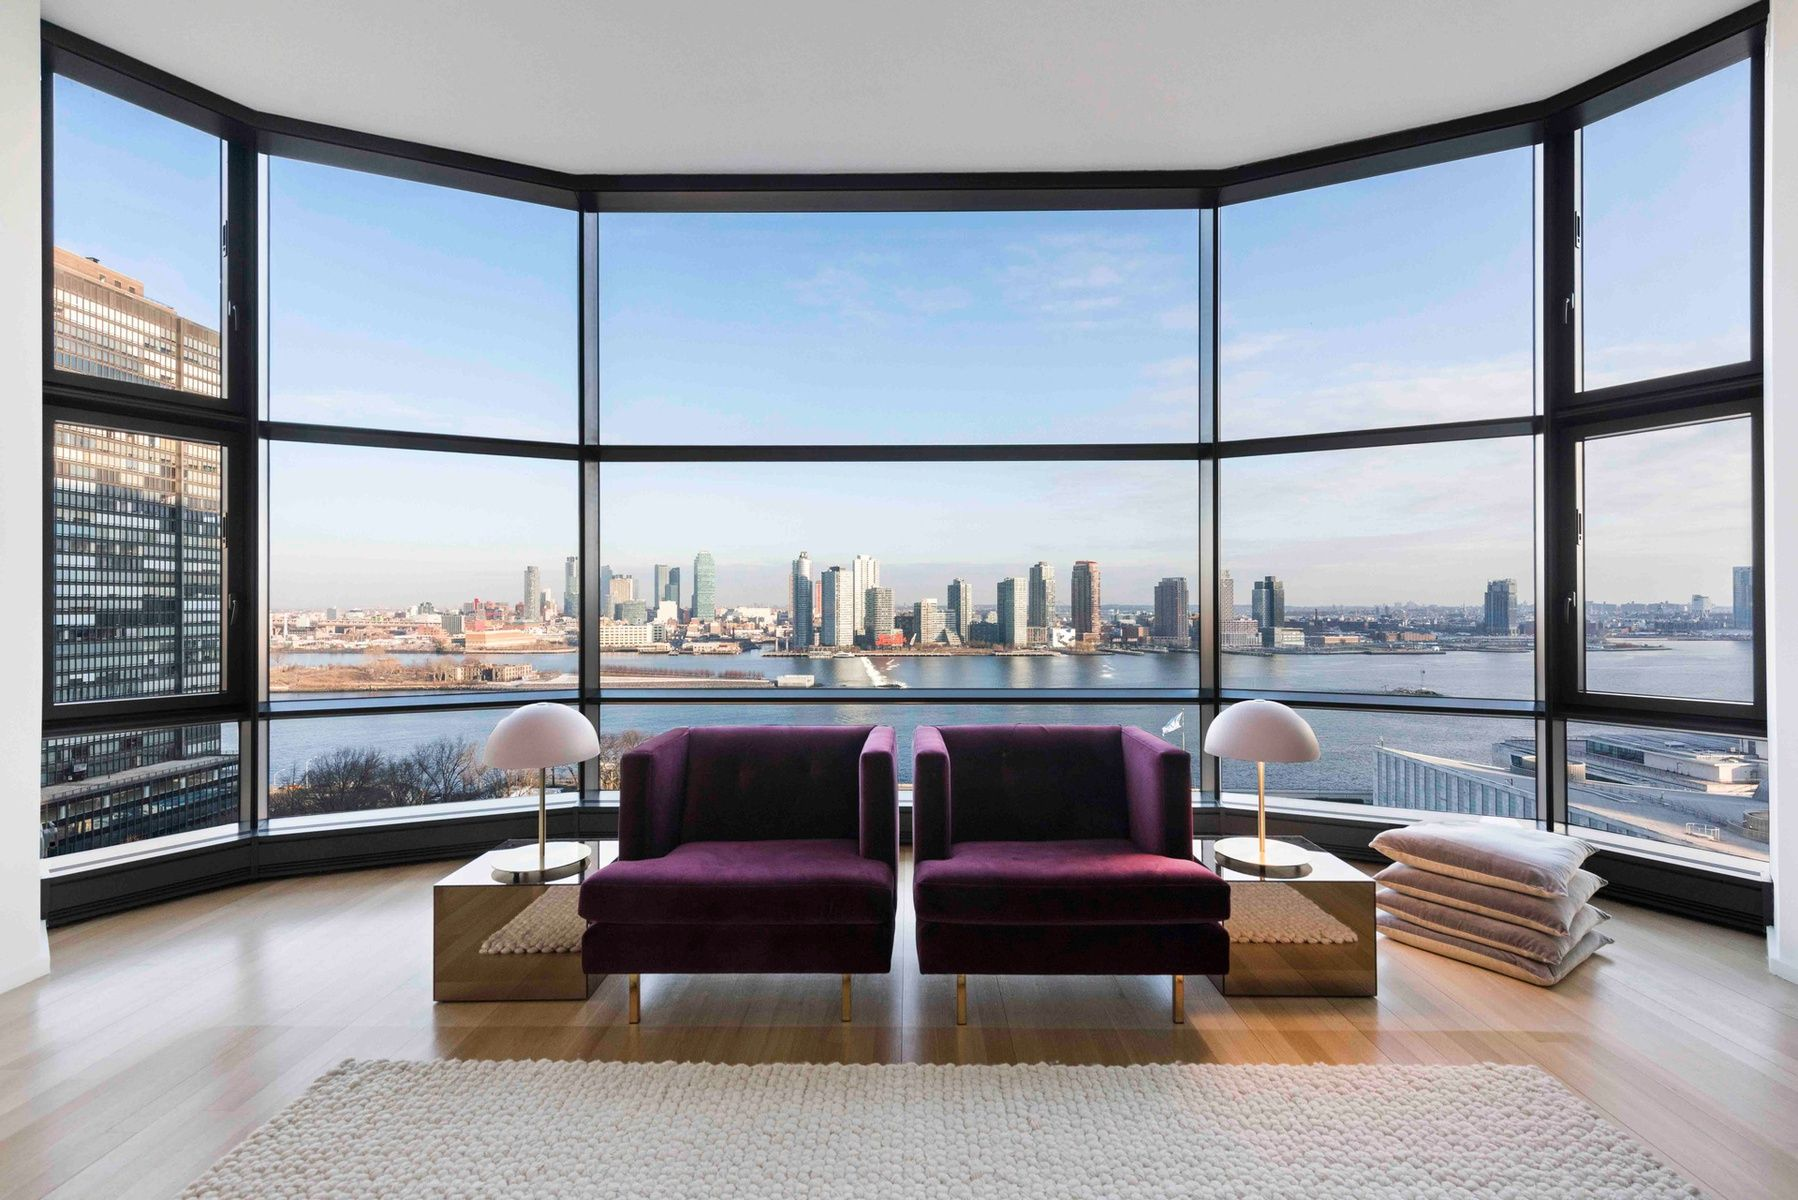 The New York City Apartment Below Queen Elizabeth S Could Be Yours For 30 000 A Month